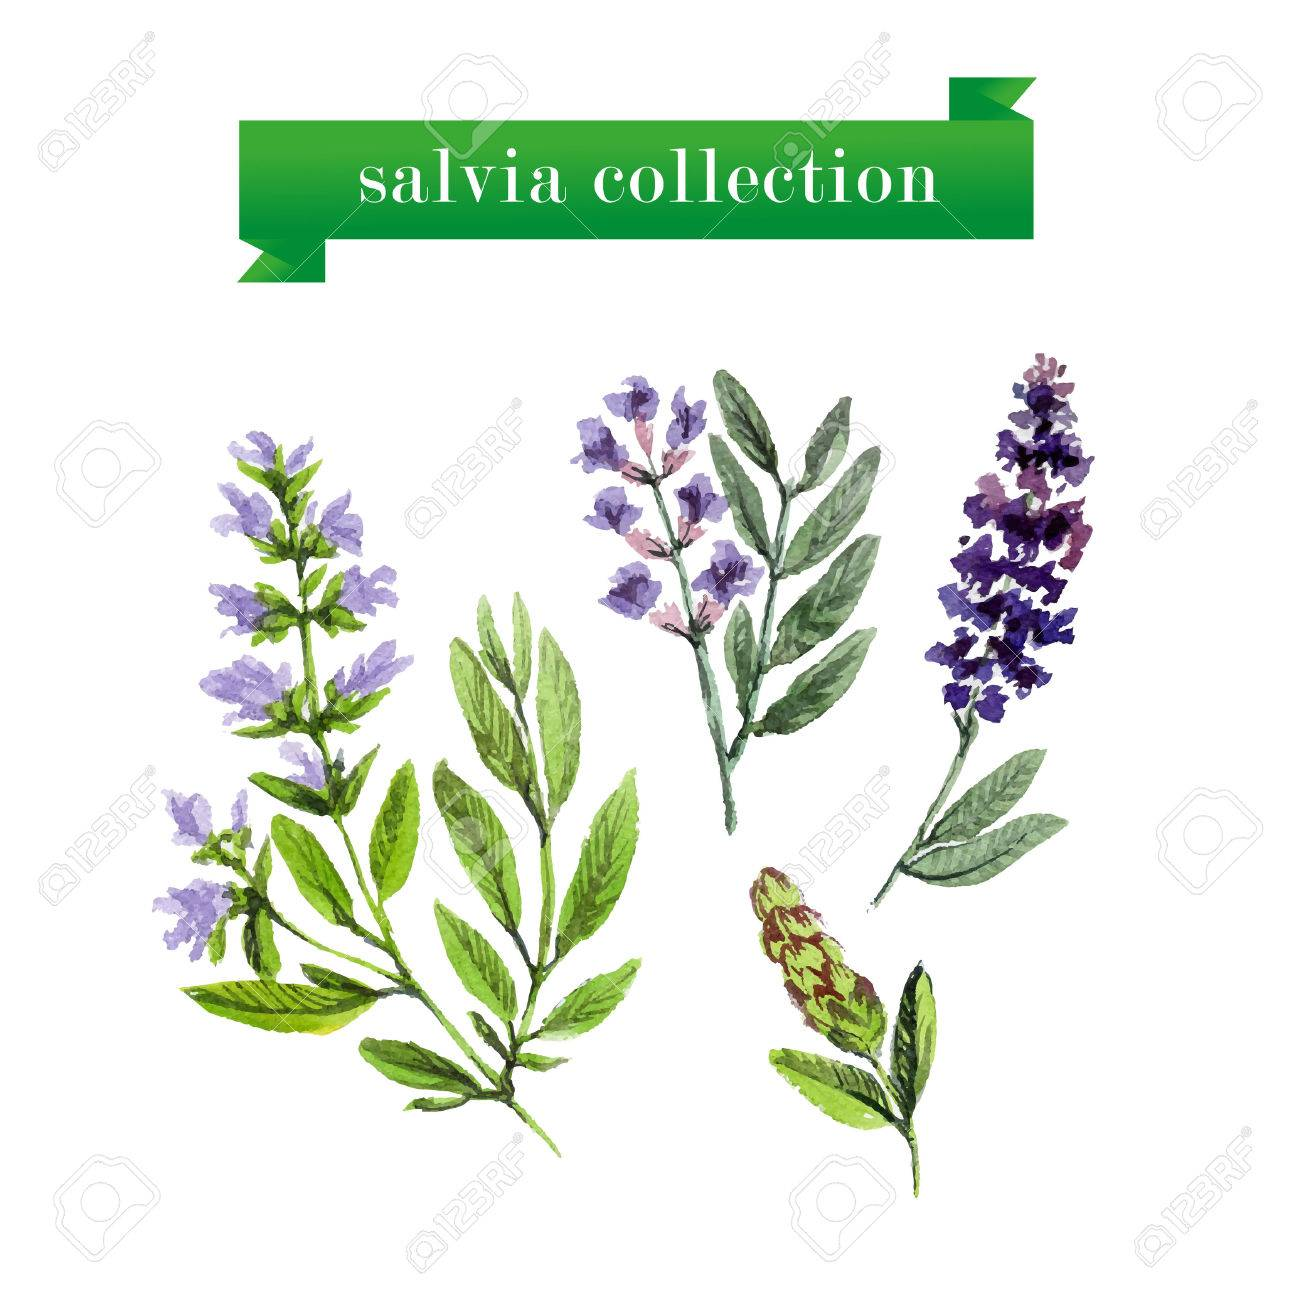 Vector set of watercolor salvia twigs on white background. Herbs design. - 46501265